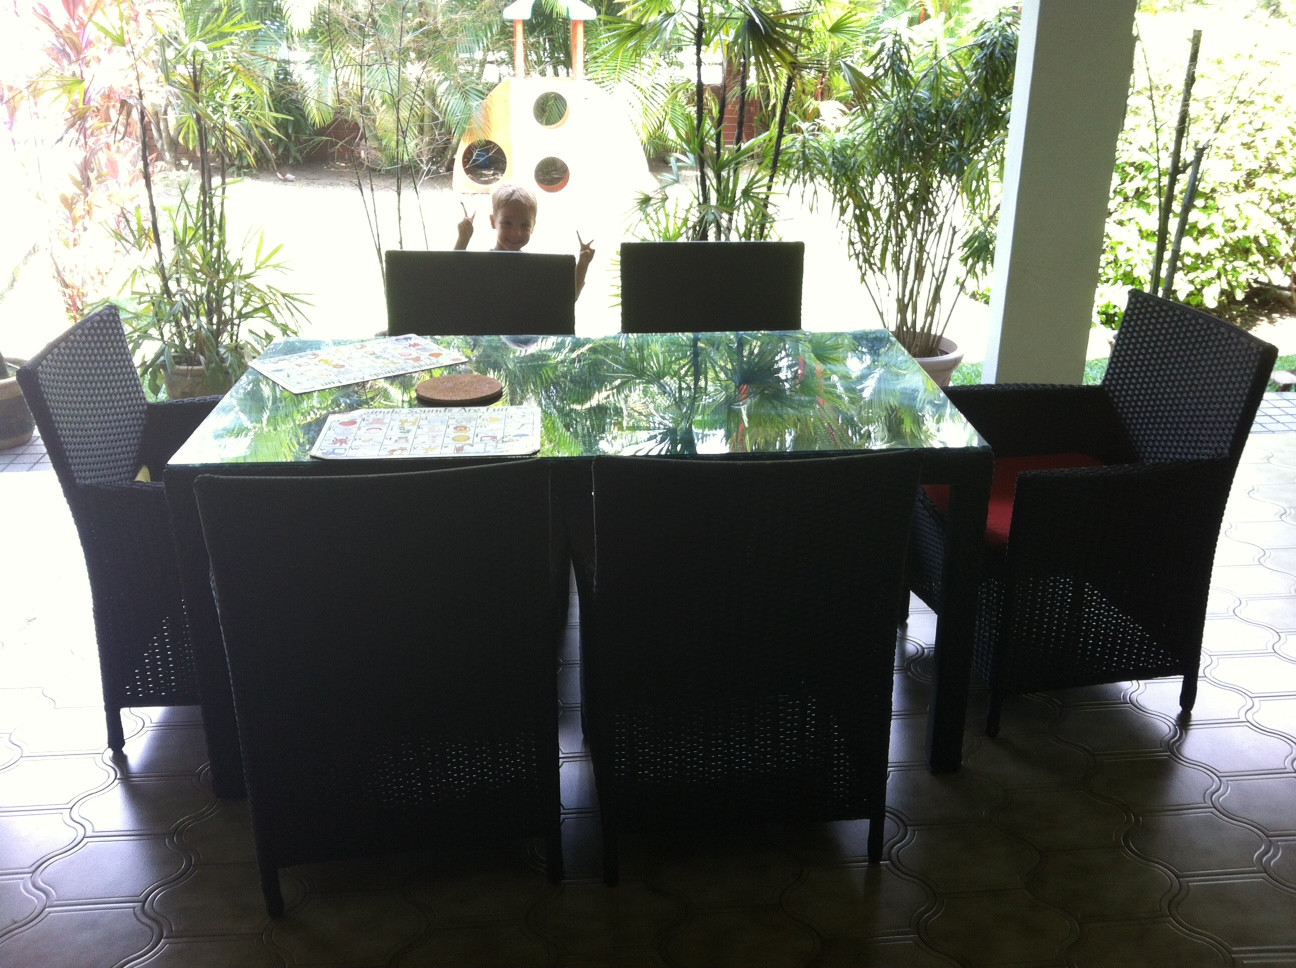 Best ideas about Patio Dining Sets On Sale . Save or Pin Outdoor Dining Sets Sale Home Citizen Now.